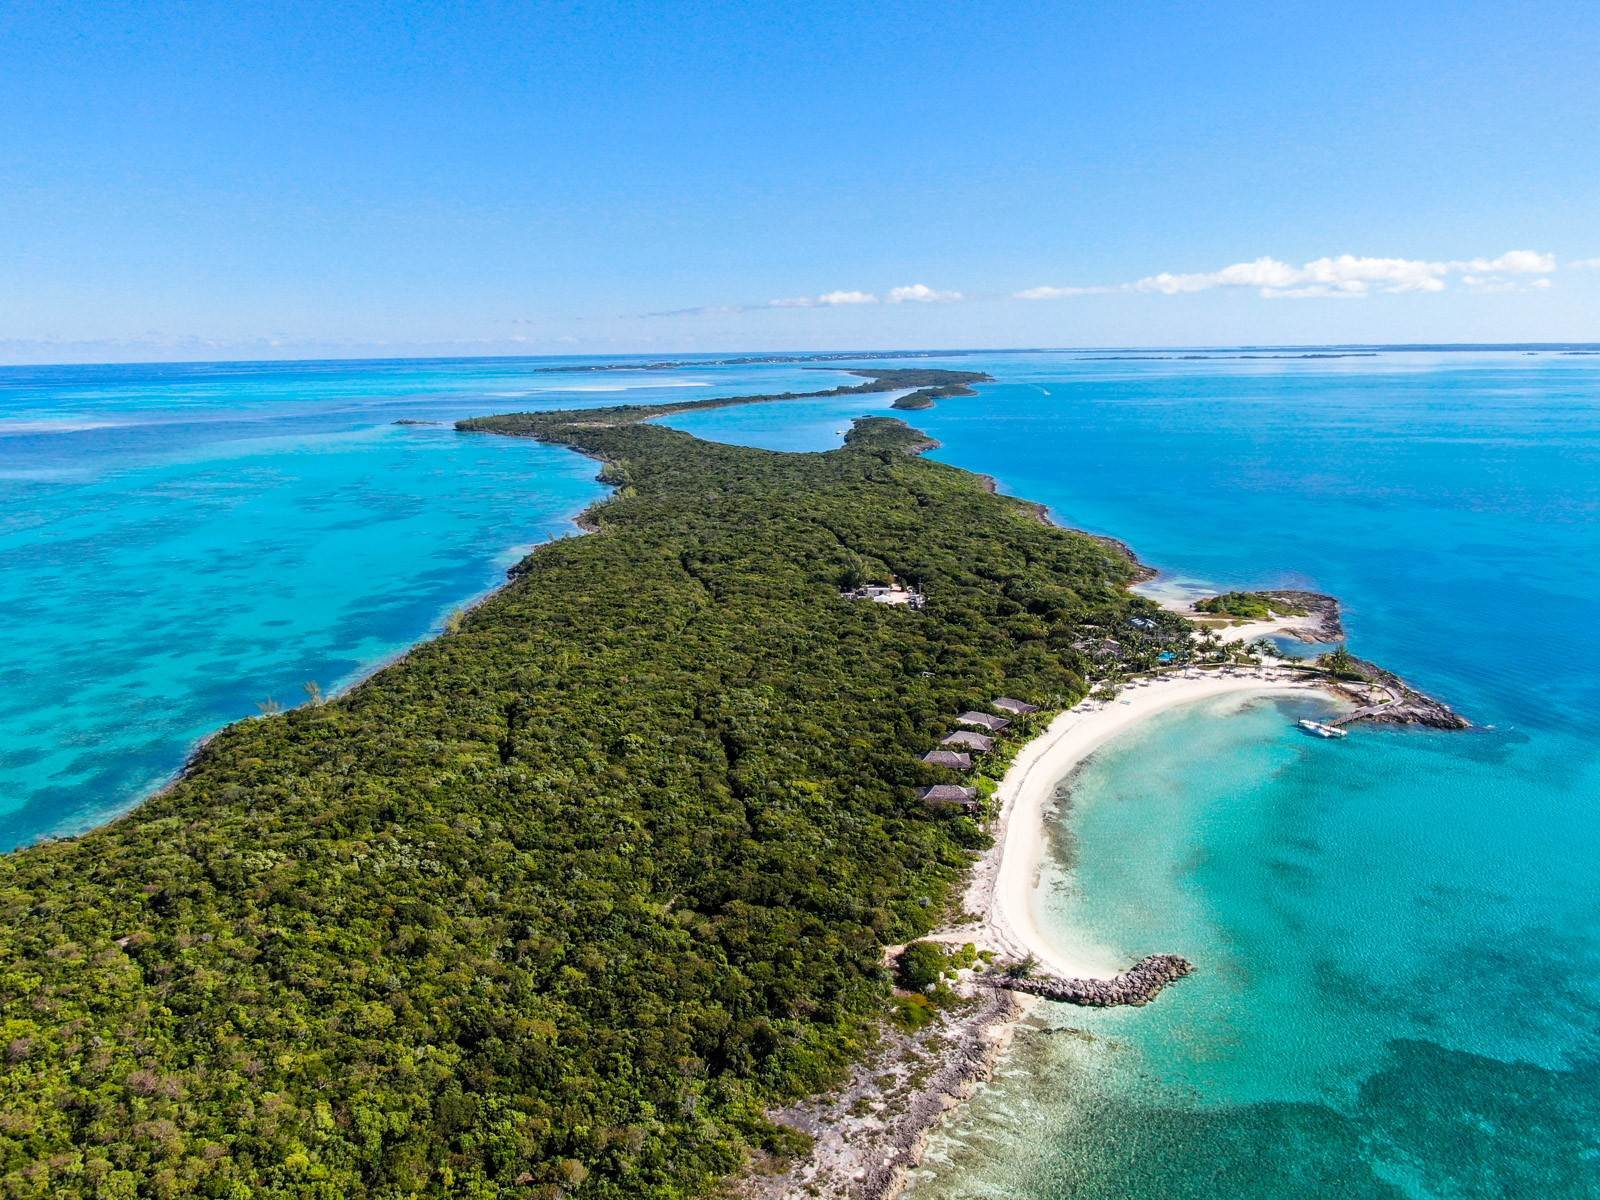 Private Islands por un Venta en Royal Island, The perfect Private Island Opportunity - MLS 43315 Eleuthera, Bahamas